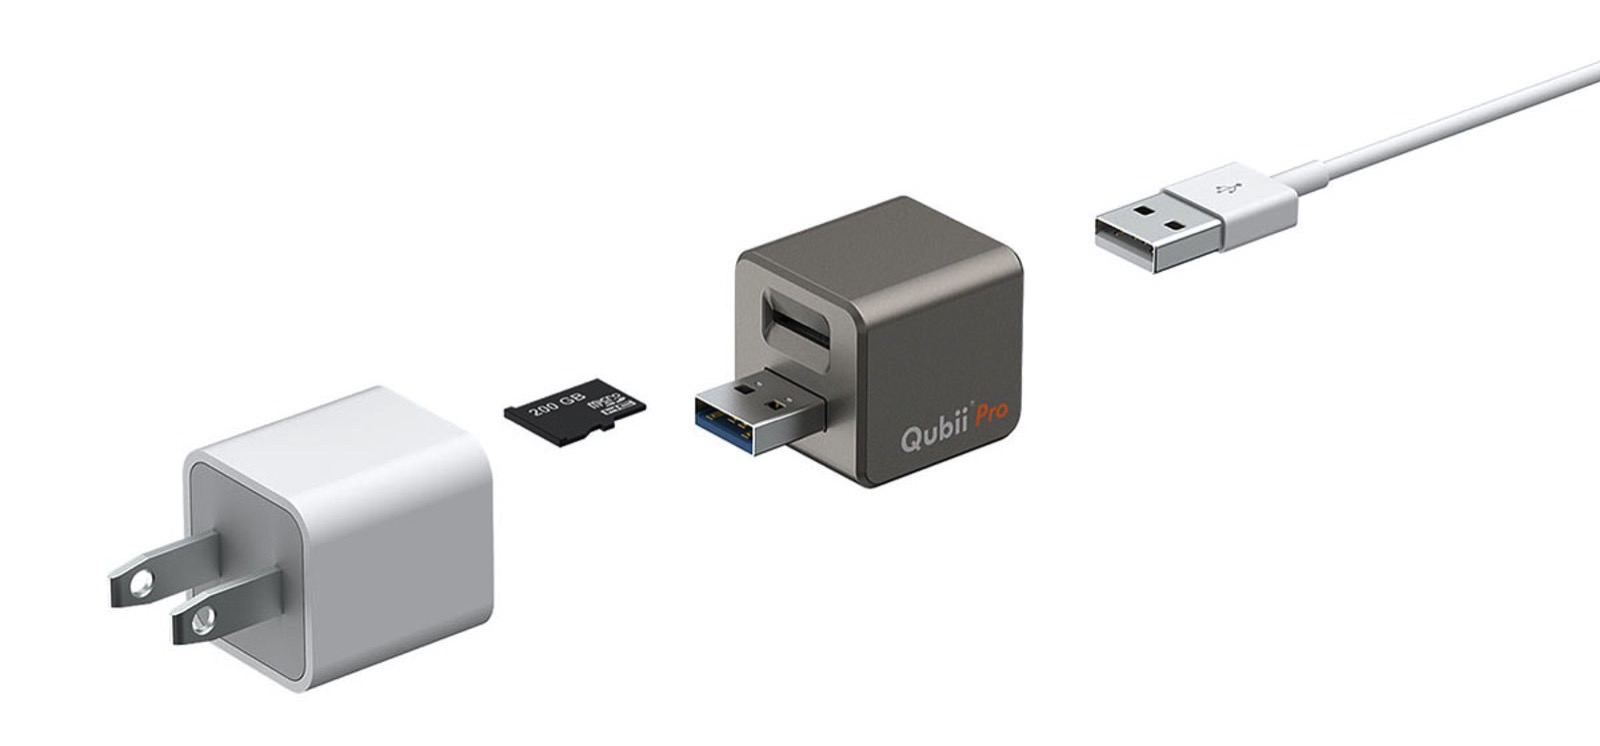 IPhone Storage hardware qubii pro 01